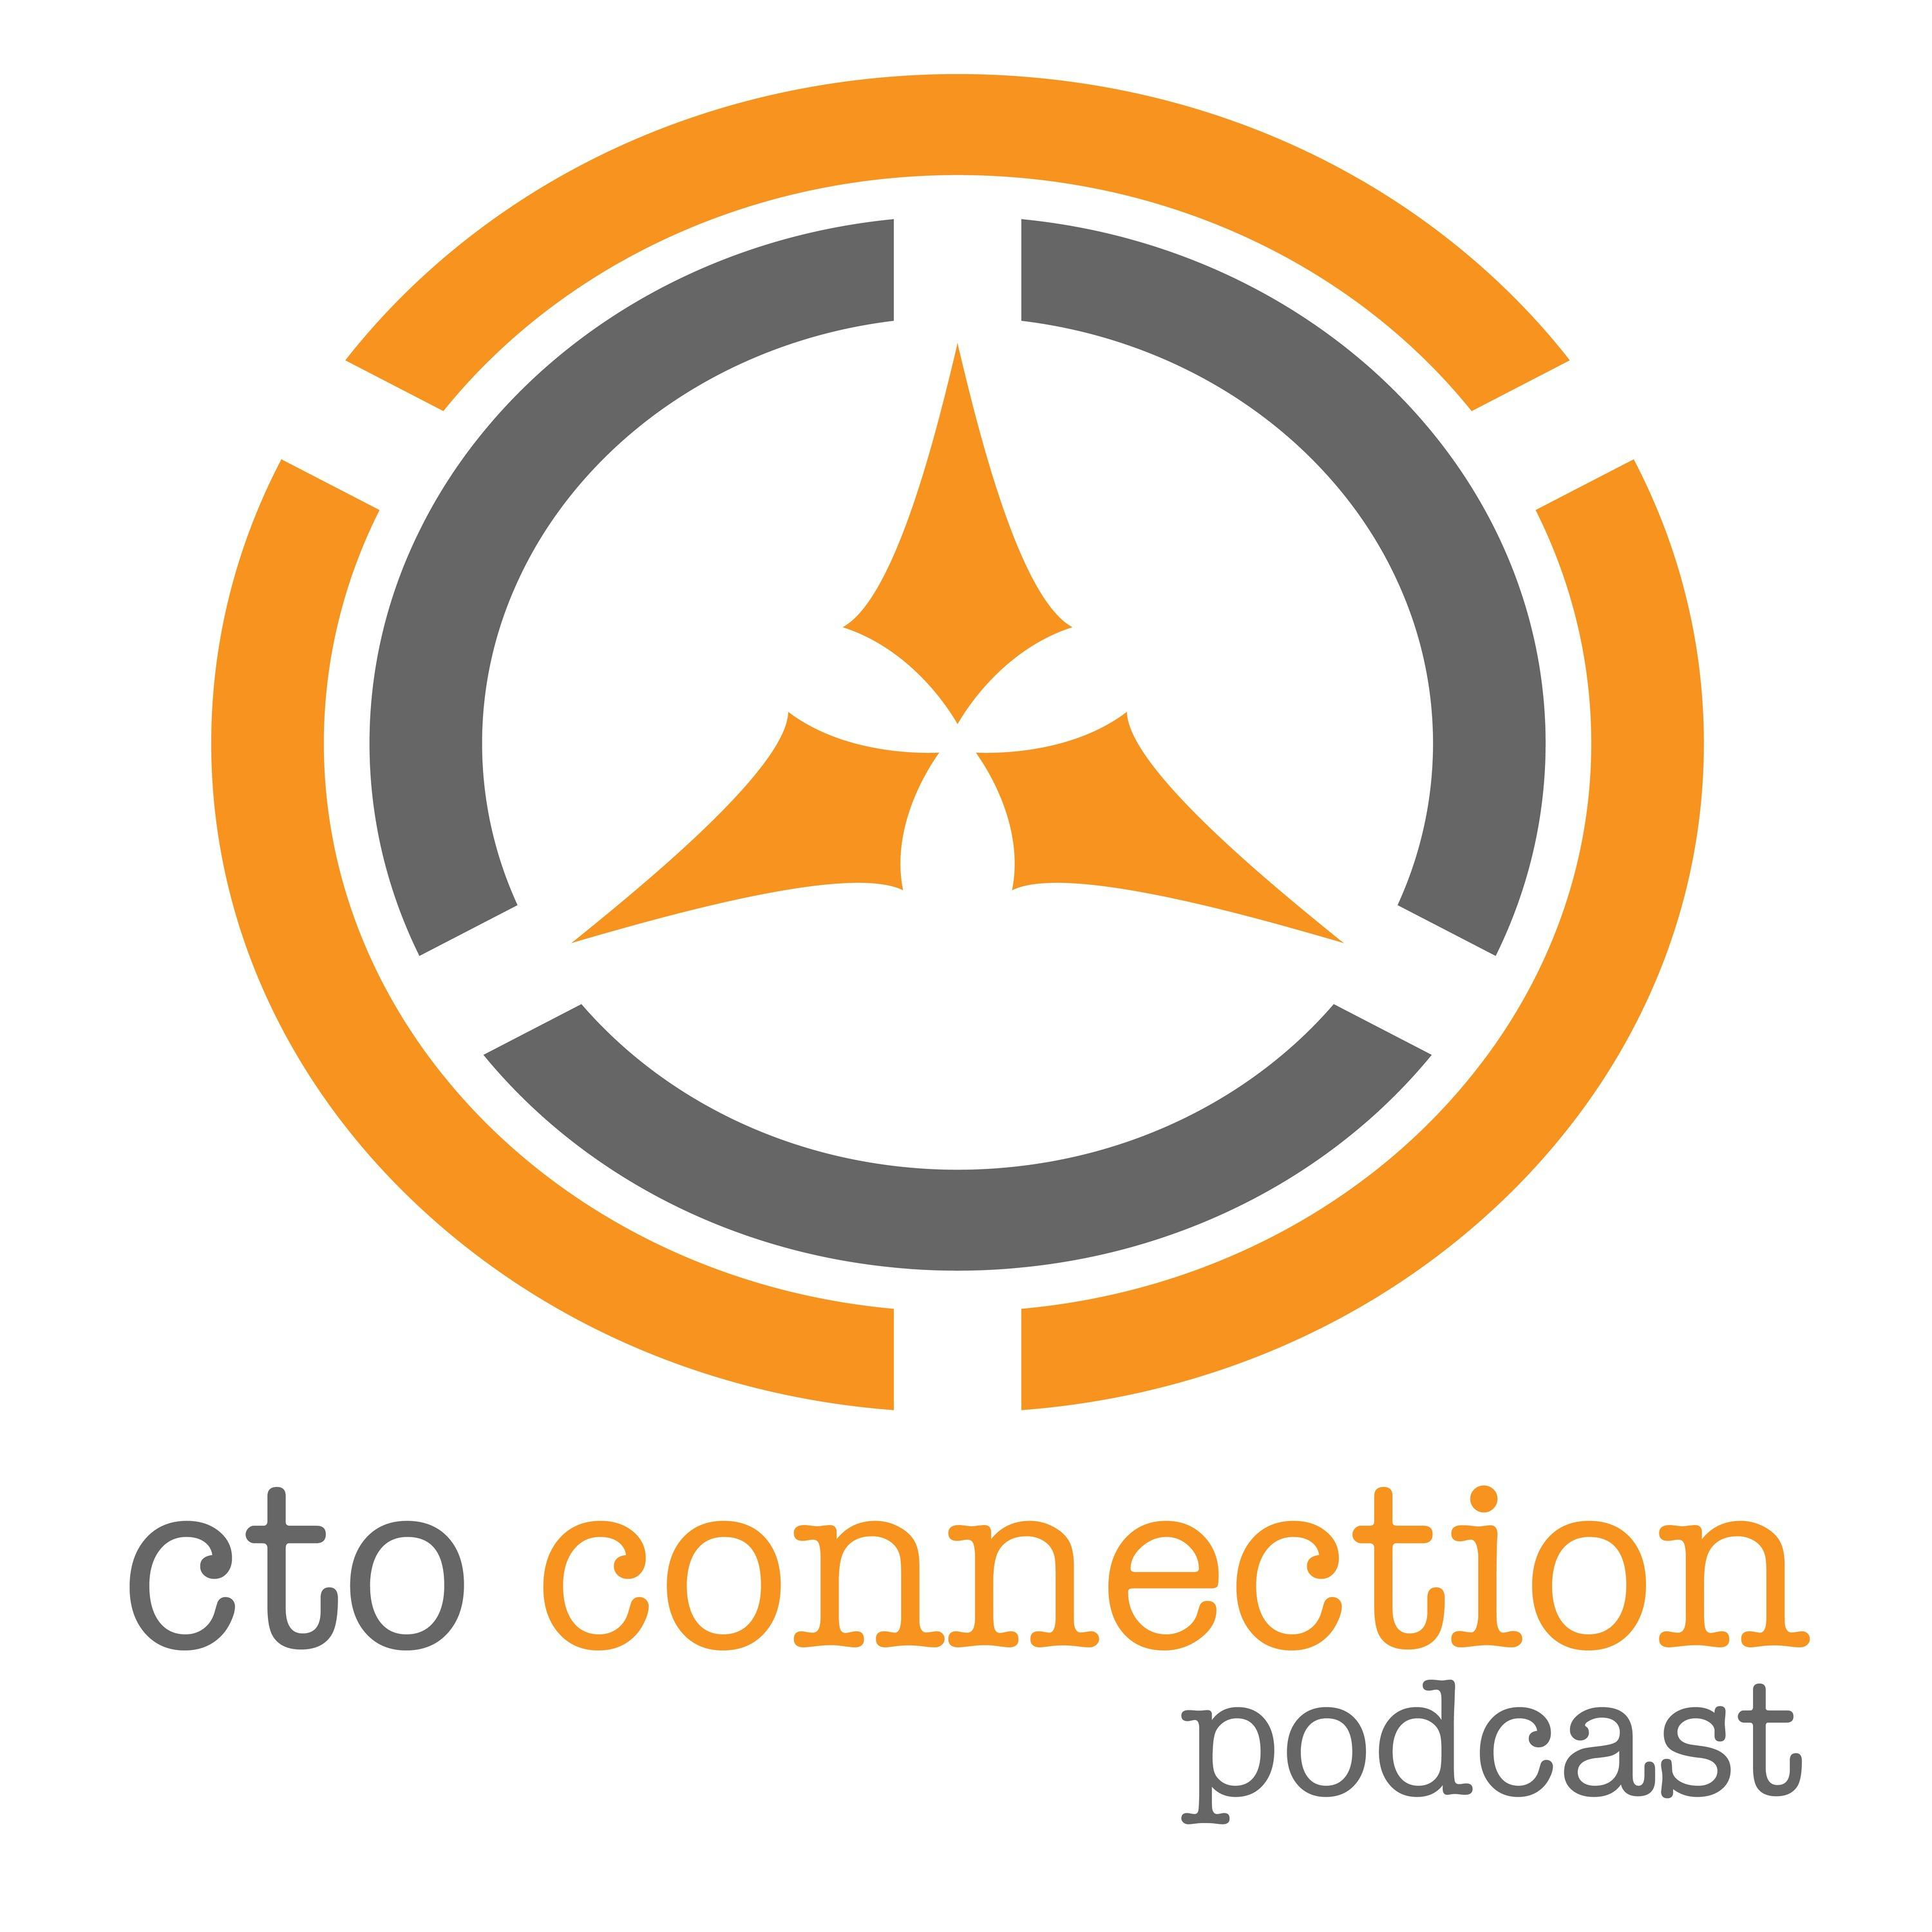 Welcome to the CTO Connection Podcast!